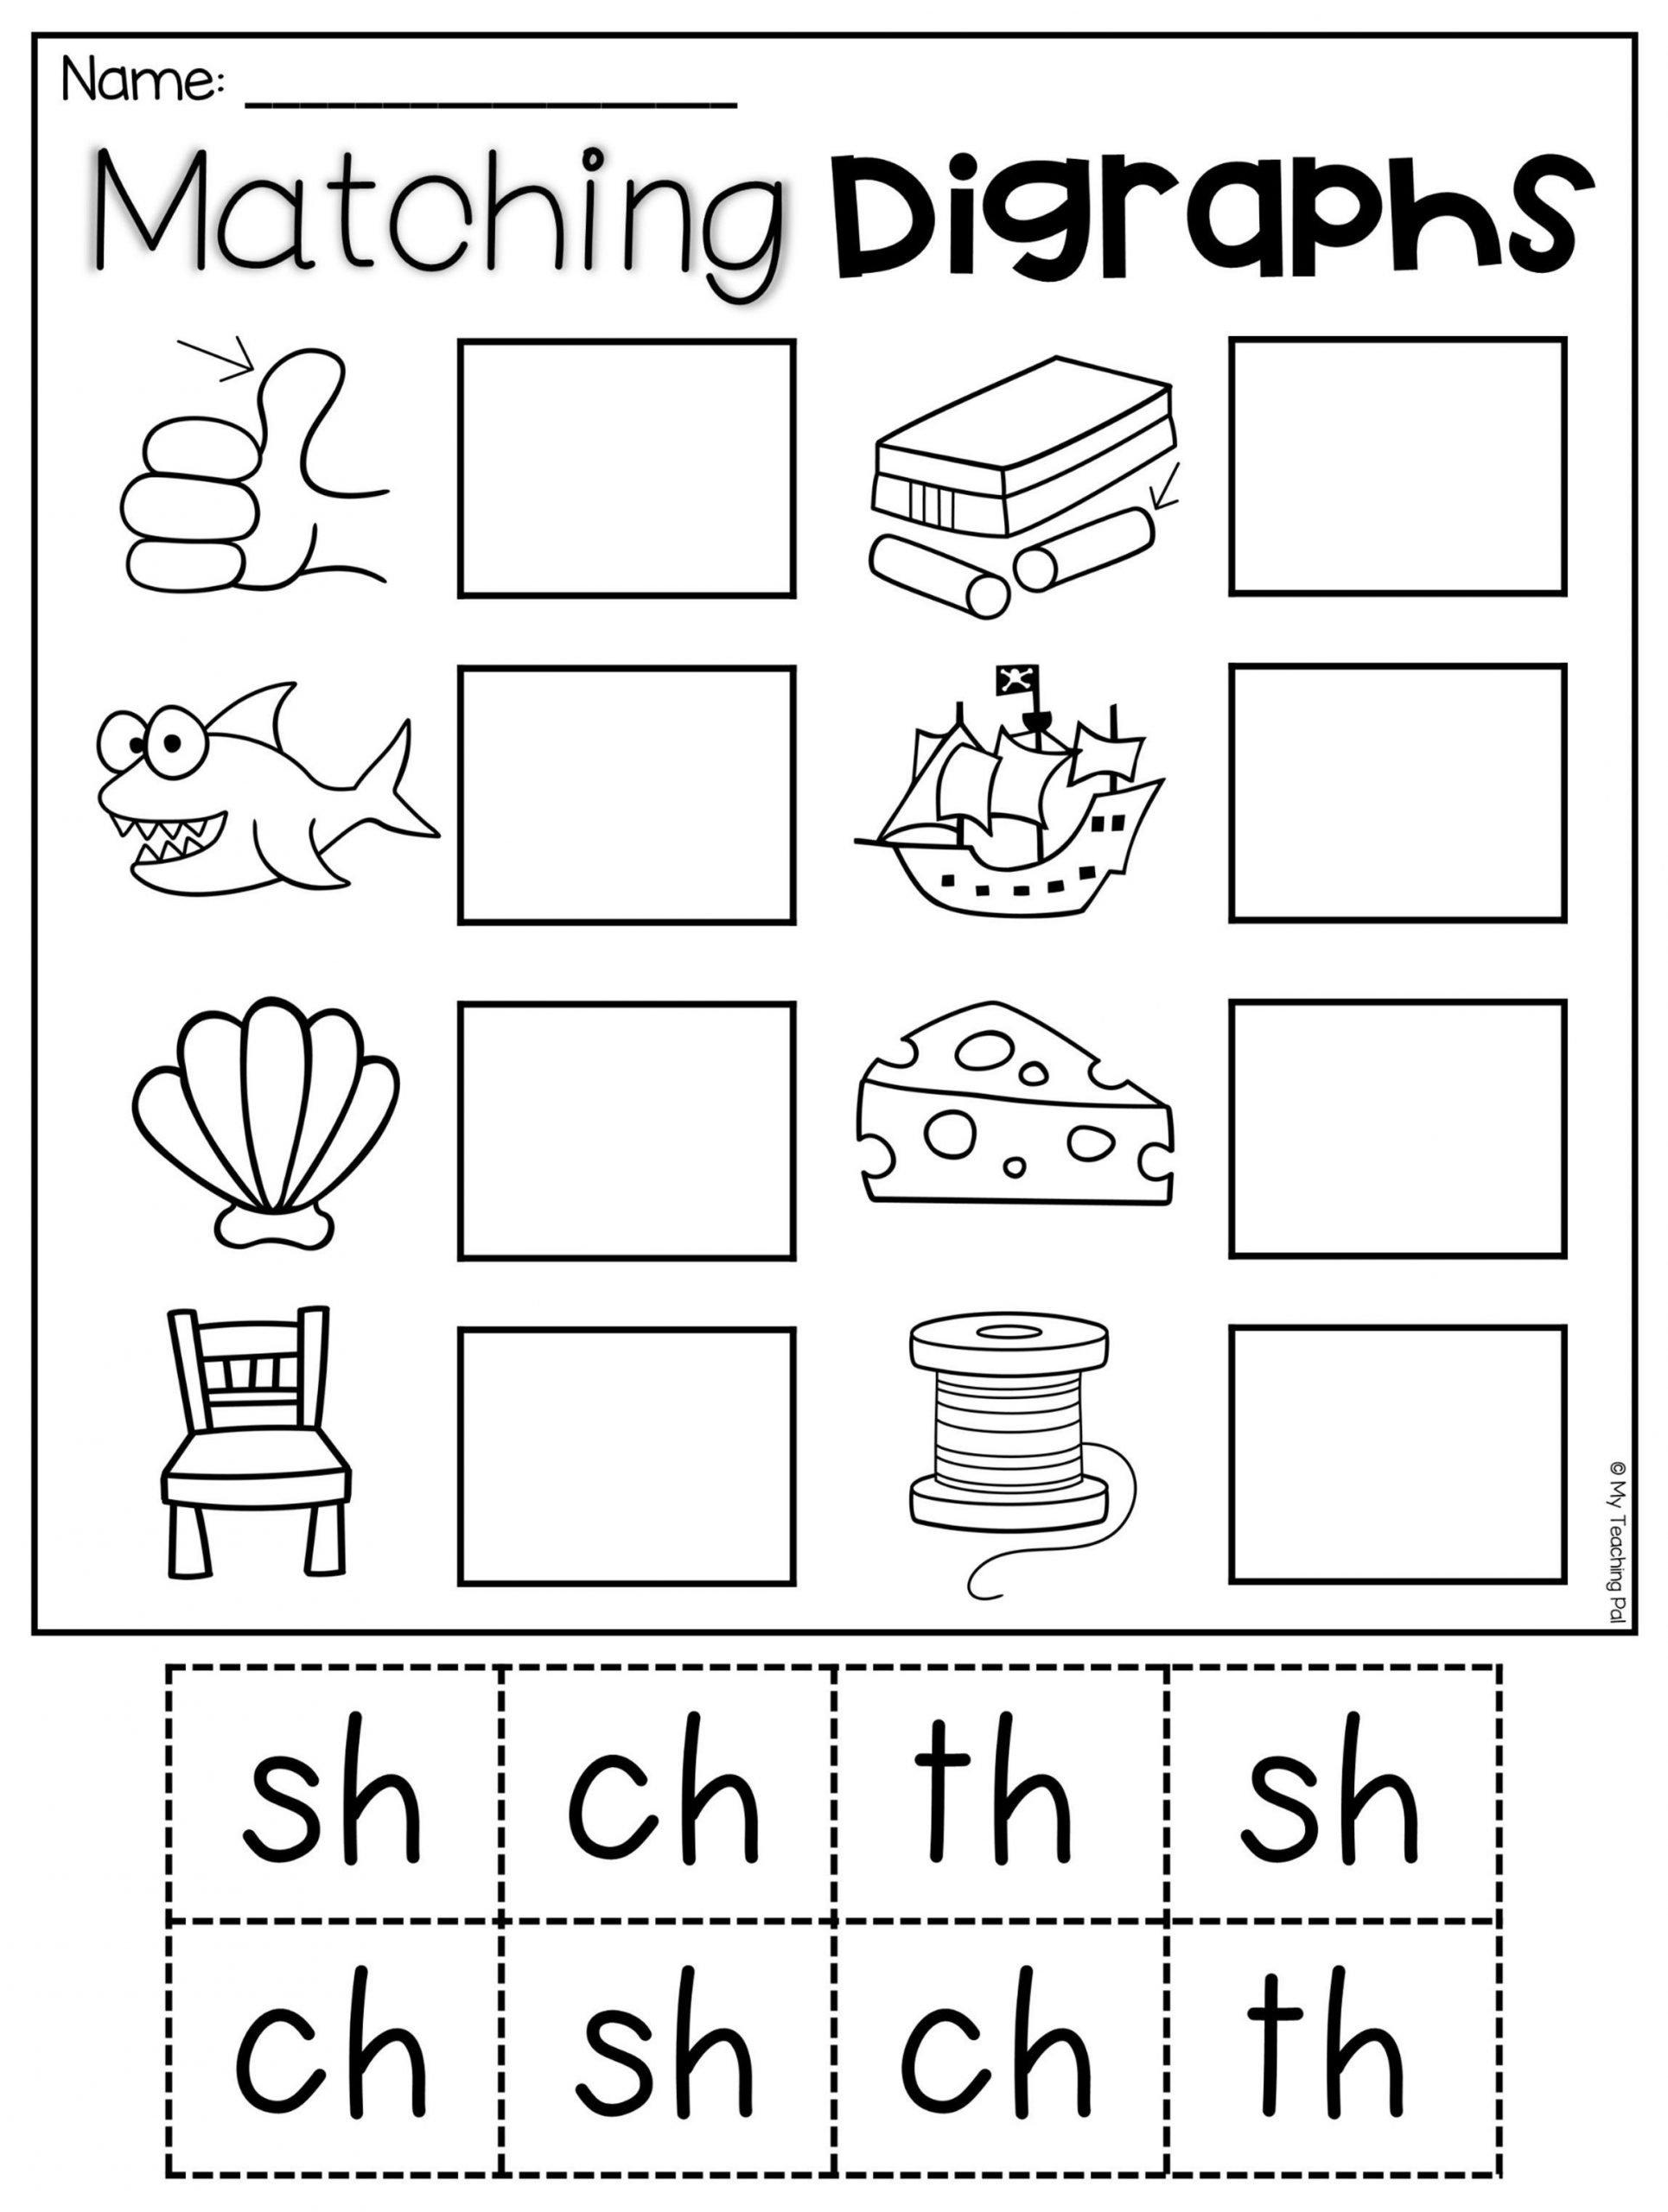 Wh Worksheets for Kindergarten Digraph Worksheet Packet Ch Sh Th Wh Ph